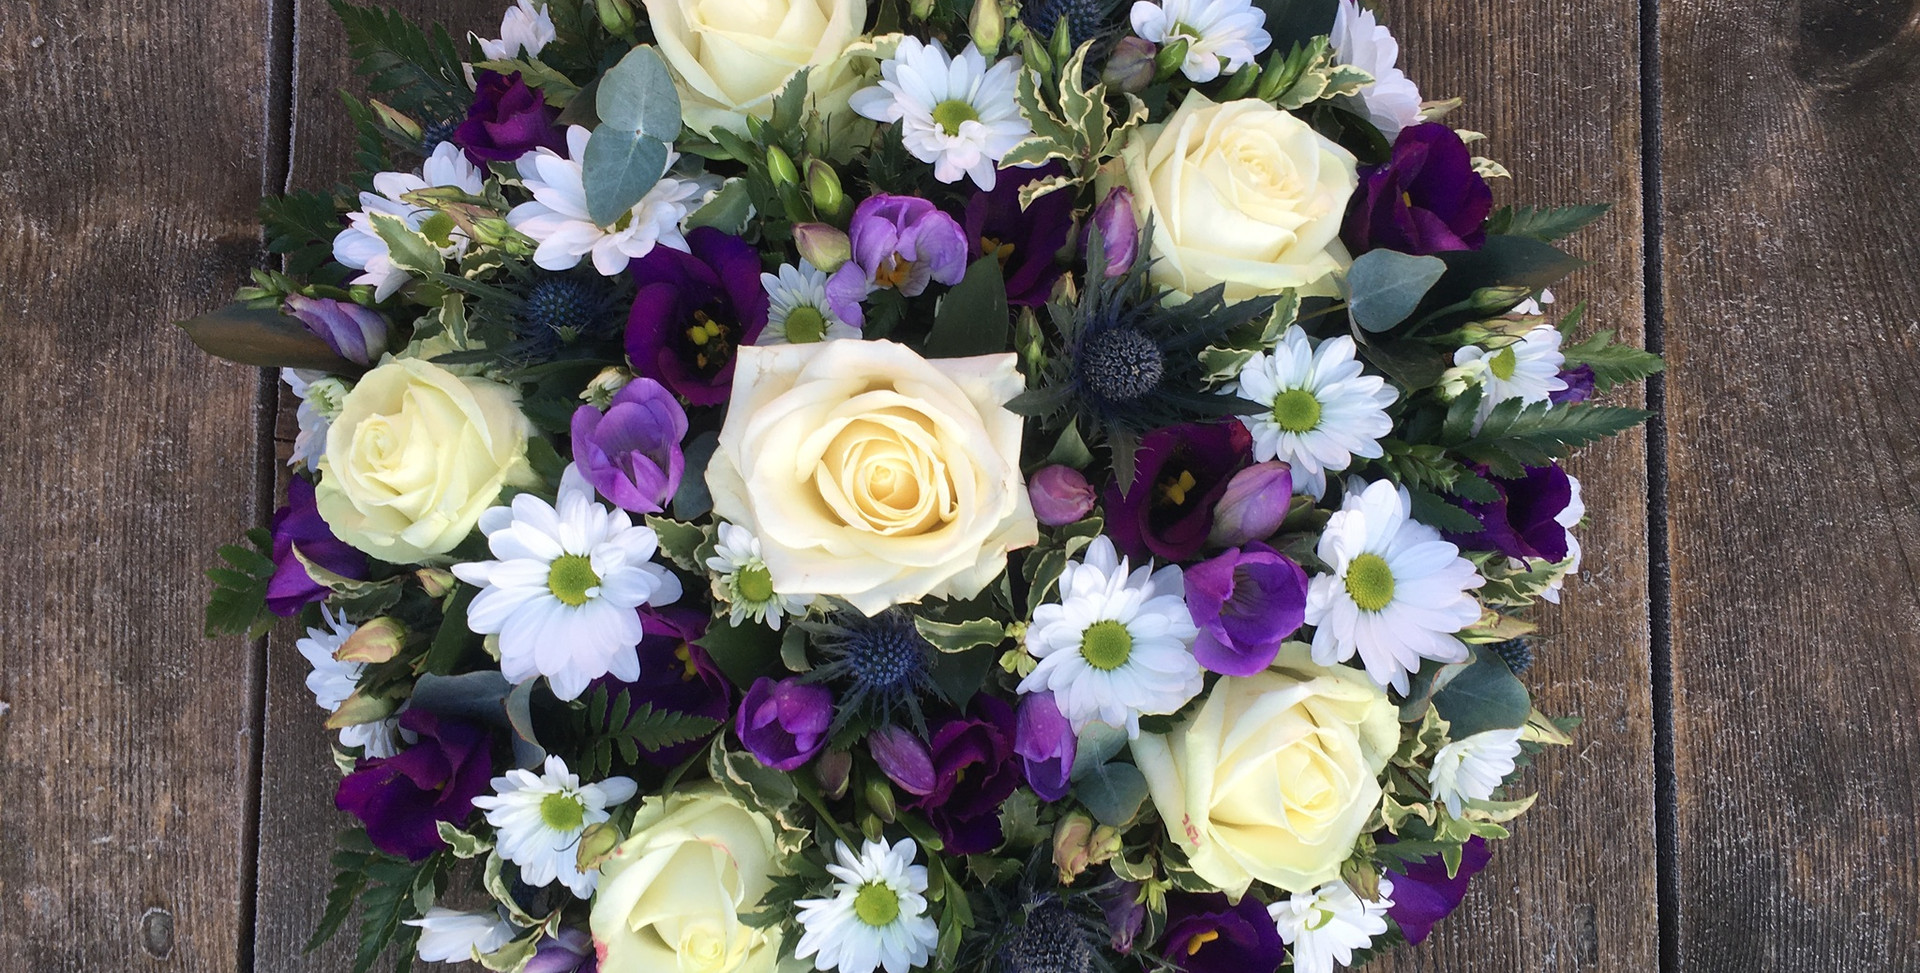 Funeral Posy - White Roses and Purples